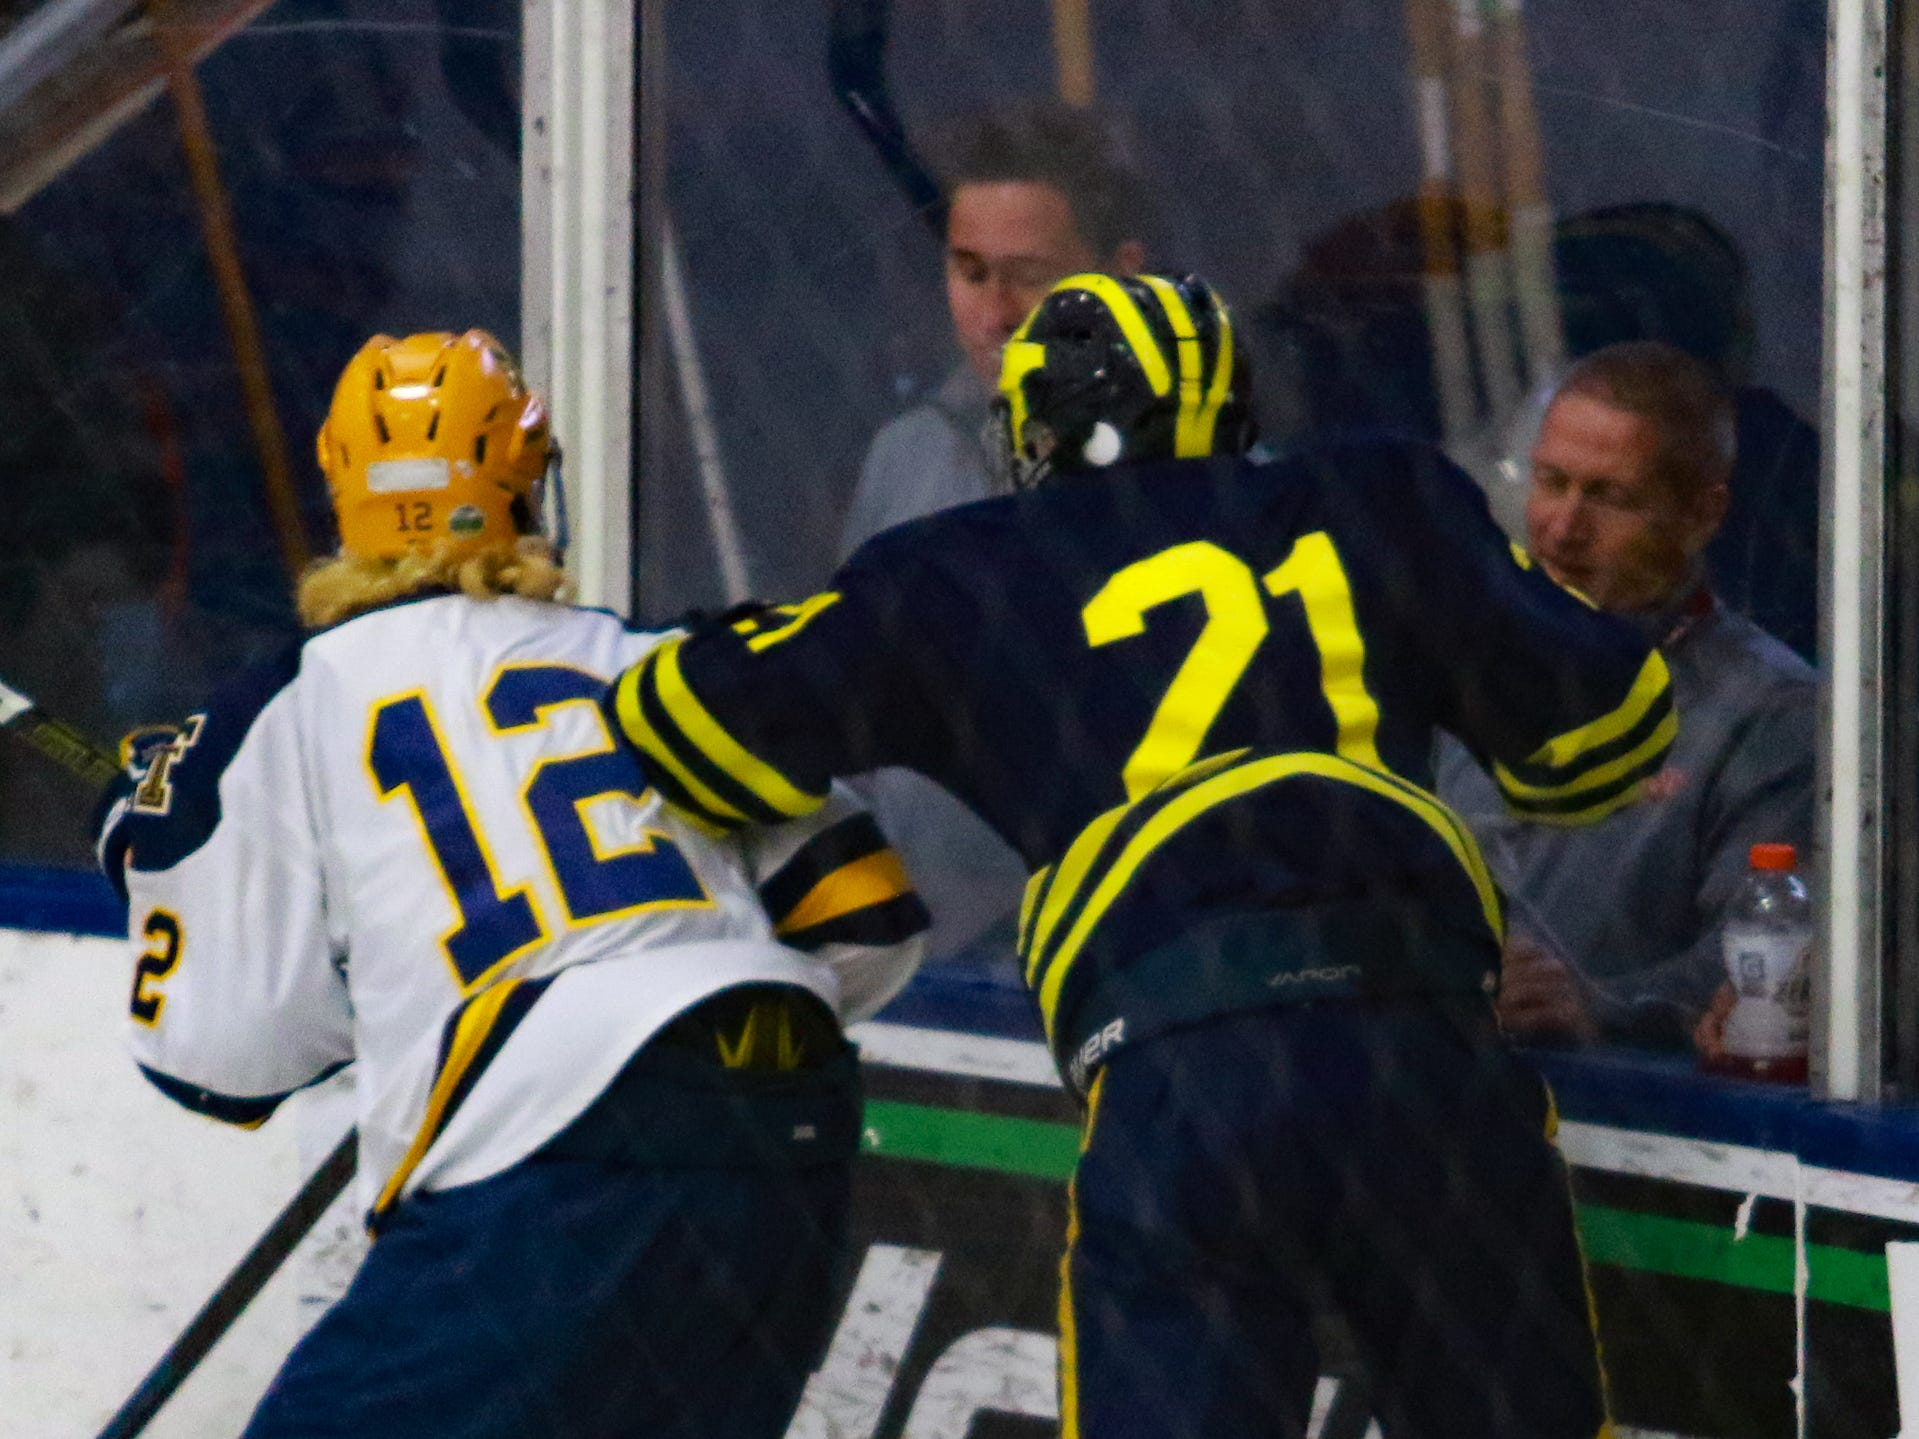 Hartland's Trent Krause (21) checks Ryan Stanley in a 4-0 victory over Trenton in the state Division 2 championship hockey game on Saturday, March 9, 2019 at USA Hockey Arena.